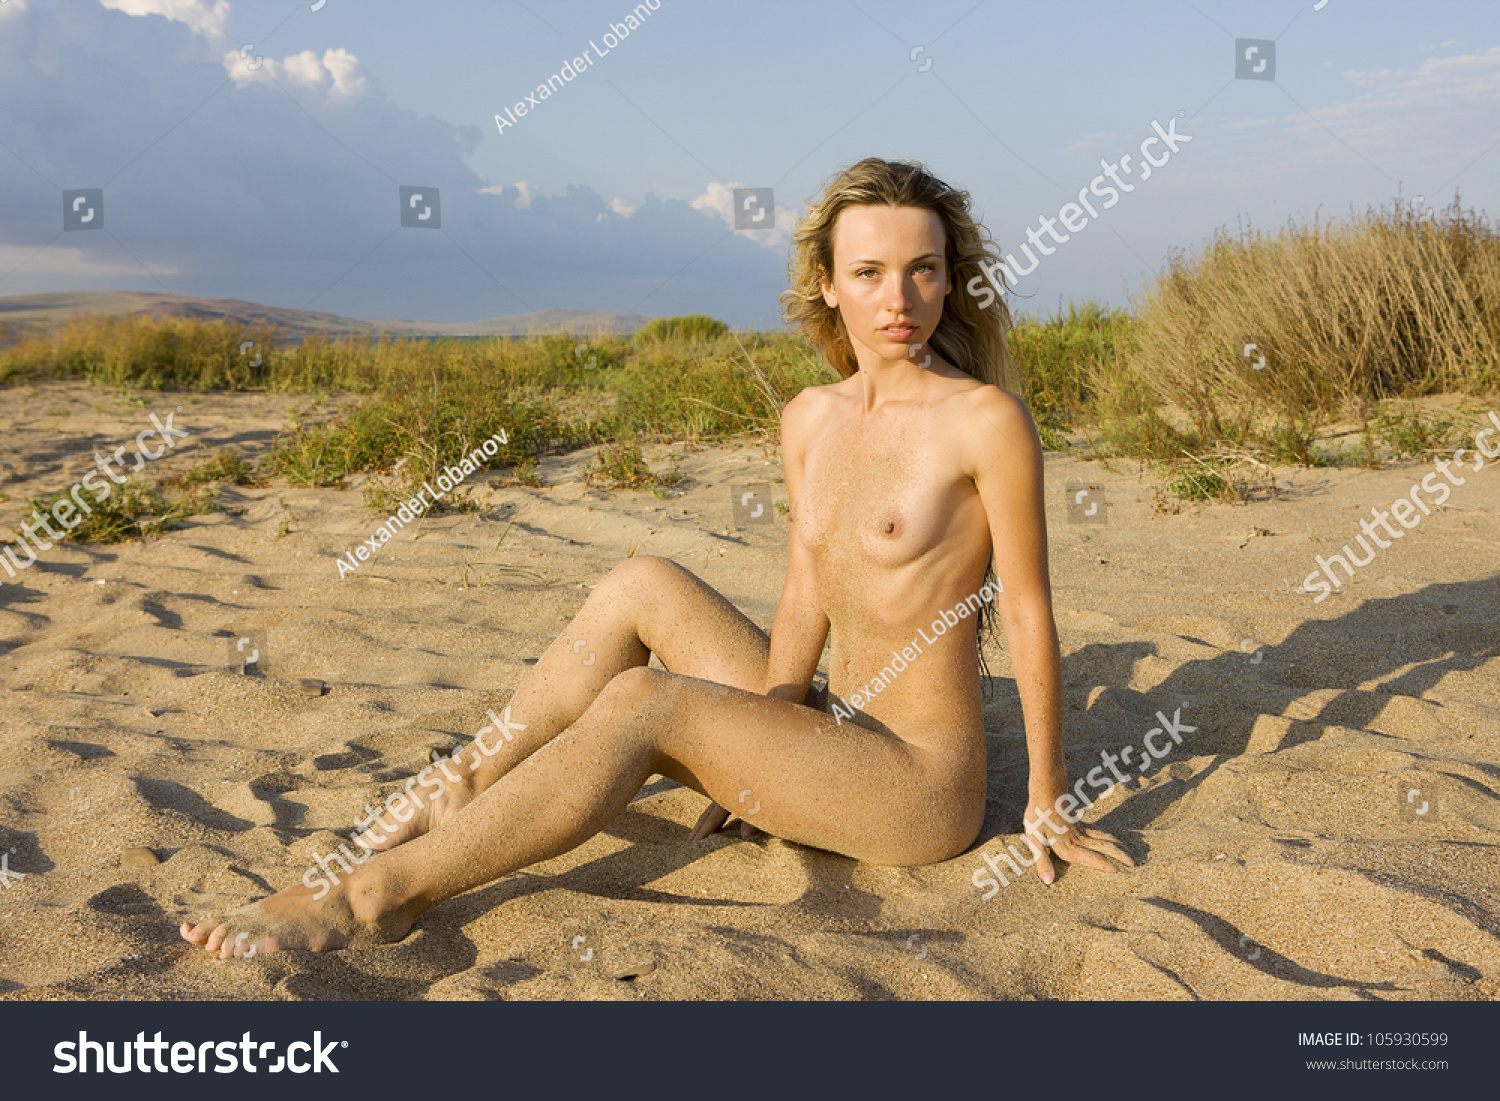 sand naked Nude girl. Young naked woman in the sand.